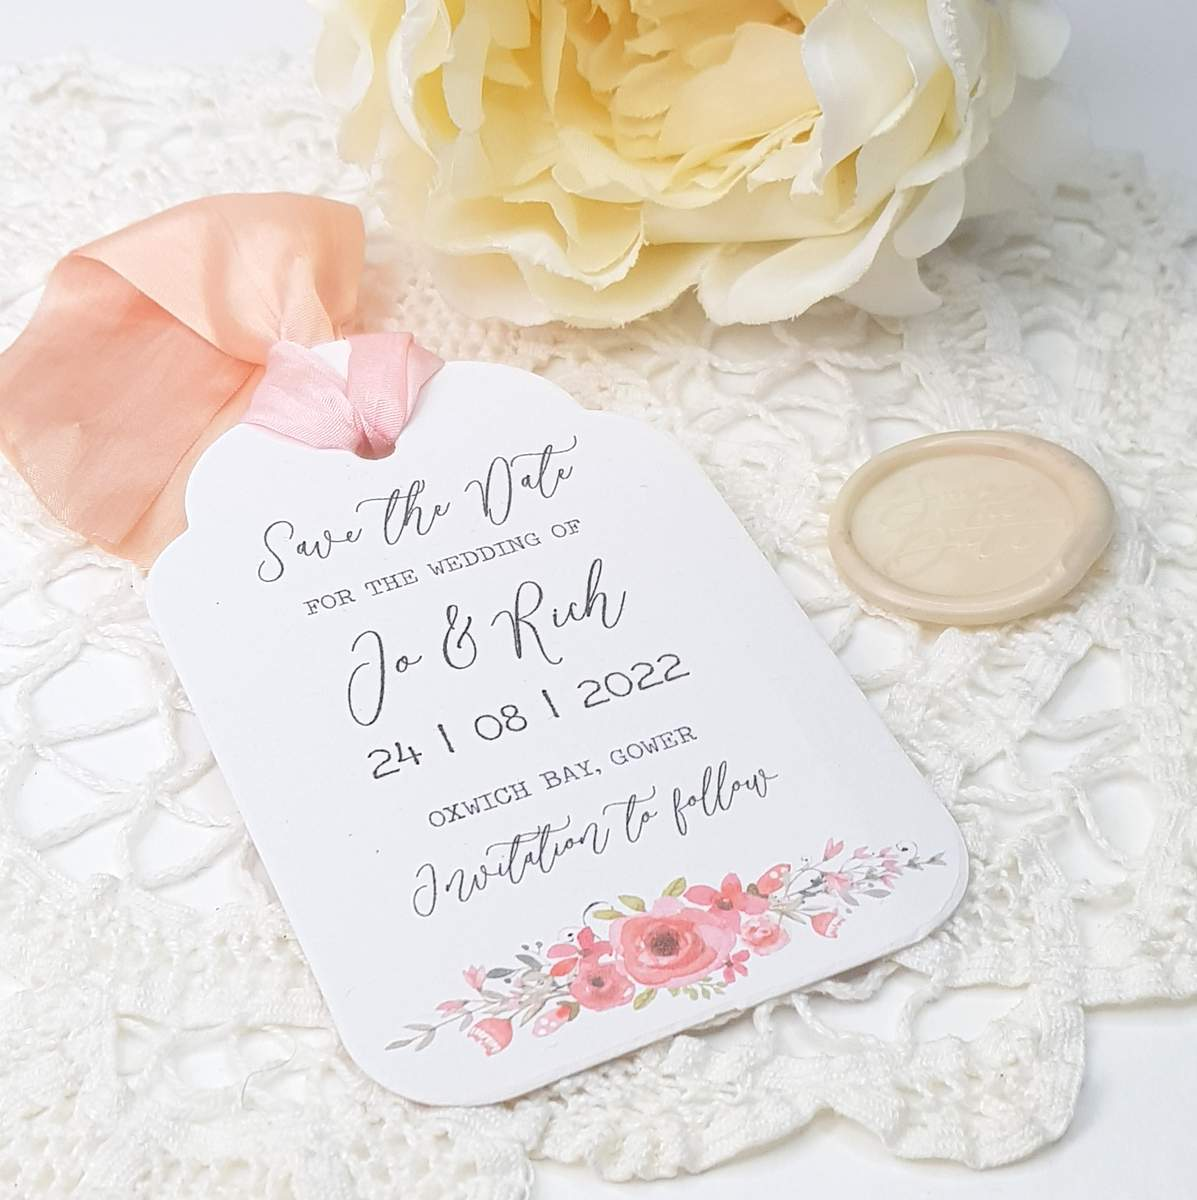 wedding save the date card, luggage tag style with pink roses at the bottom and silk ribbon at the top